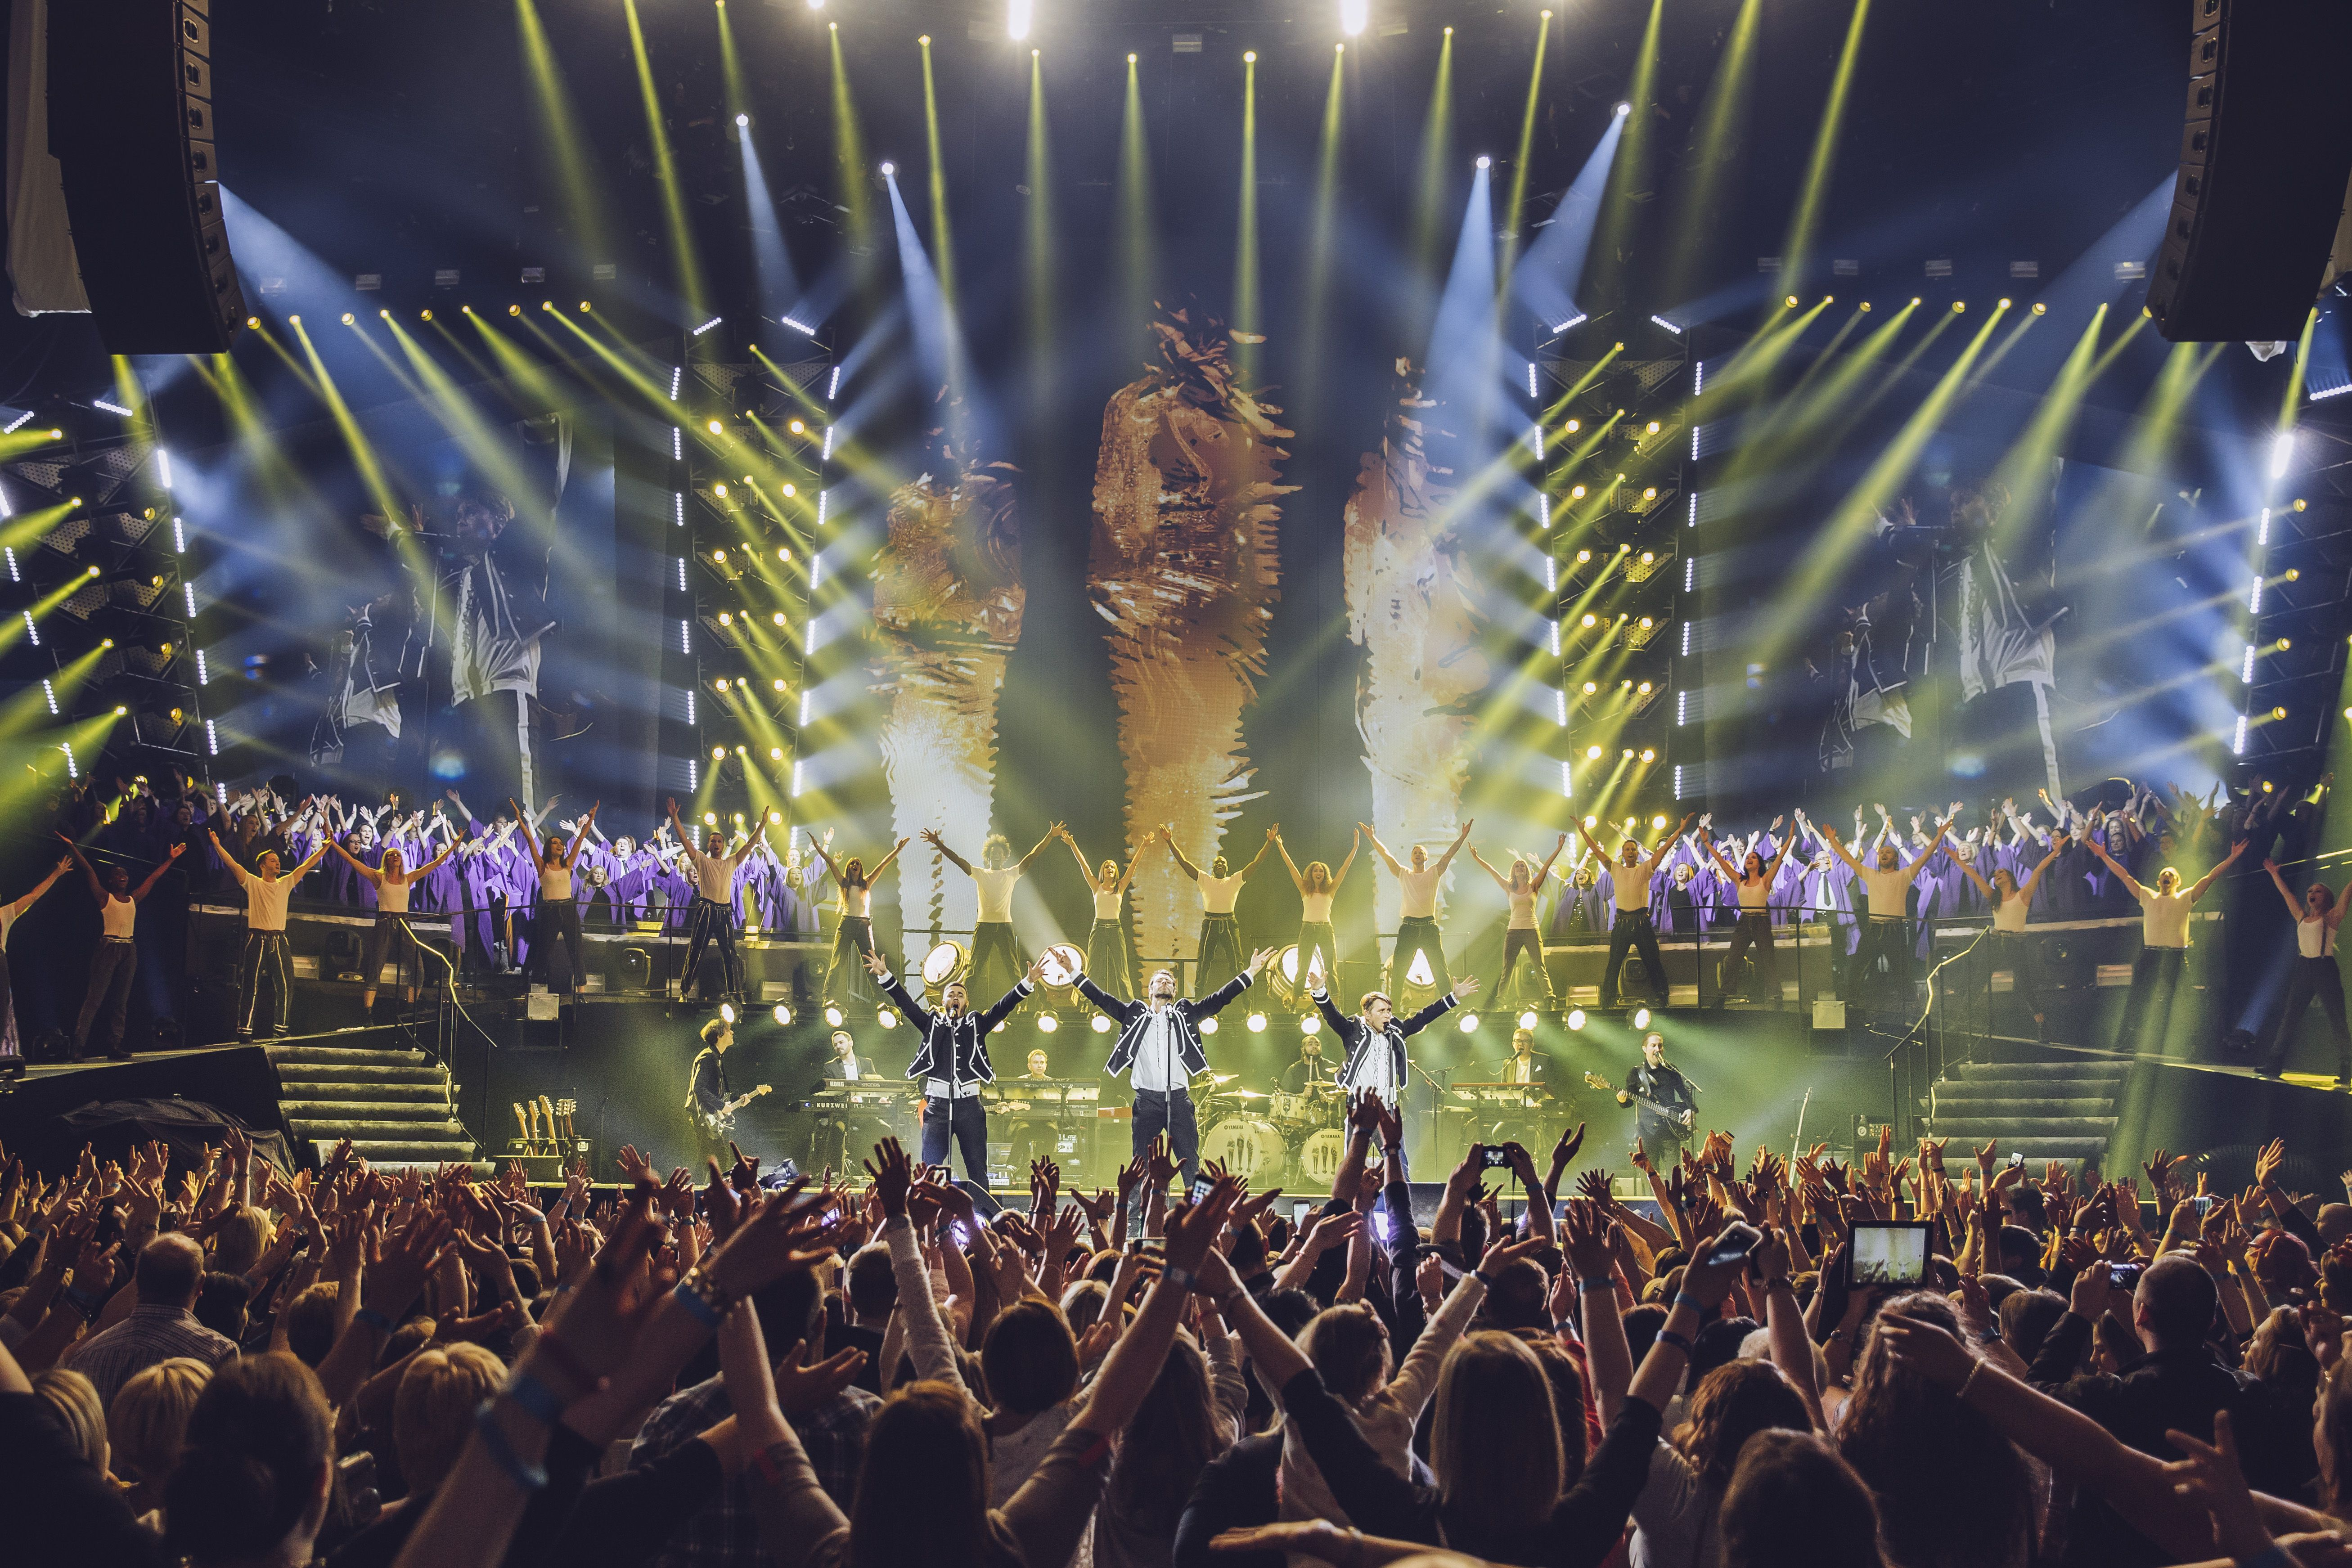 Take That are set to hit the big screen as their Greatest Hits tour will be broadcast live in cinemas